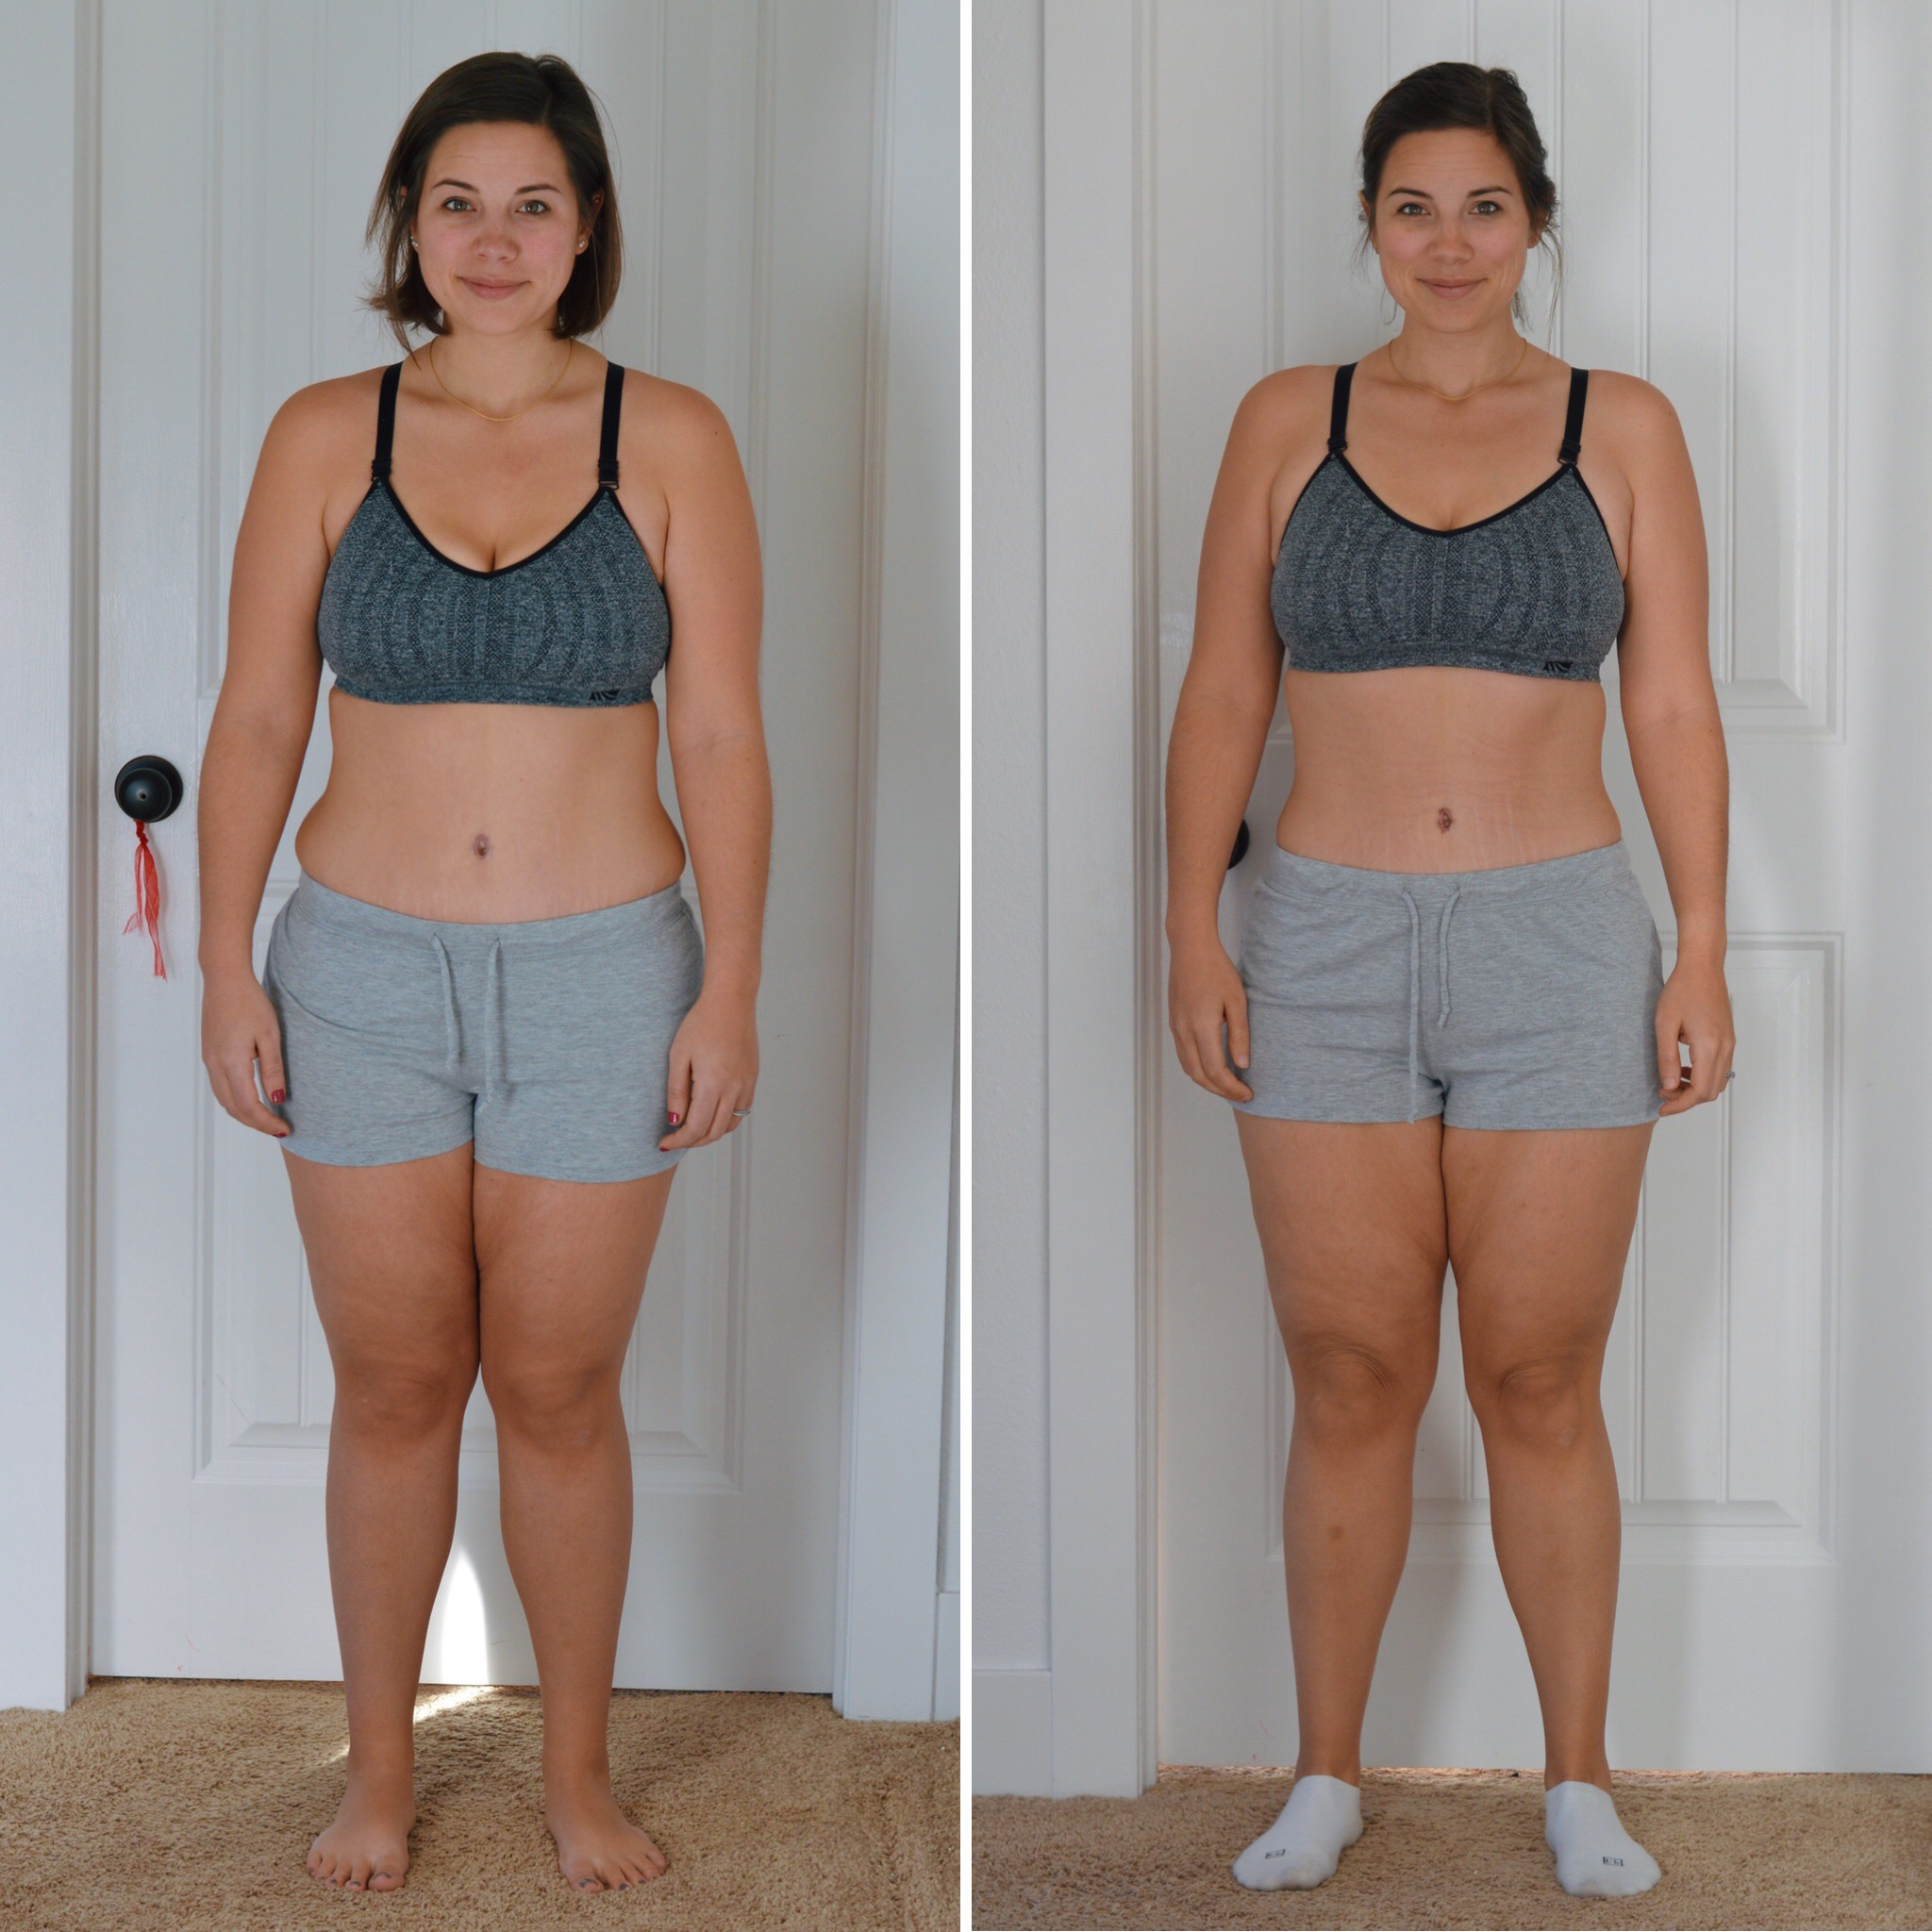 how much can someone lose weight in a month